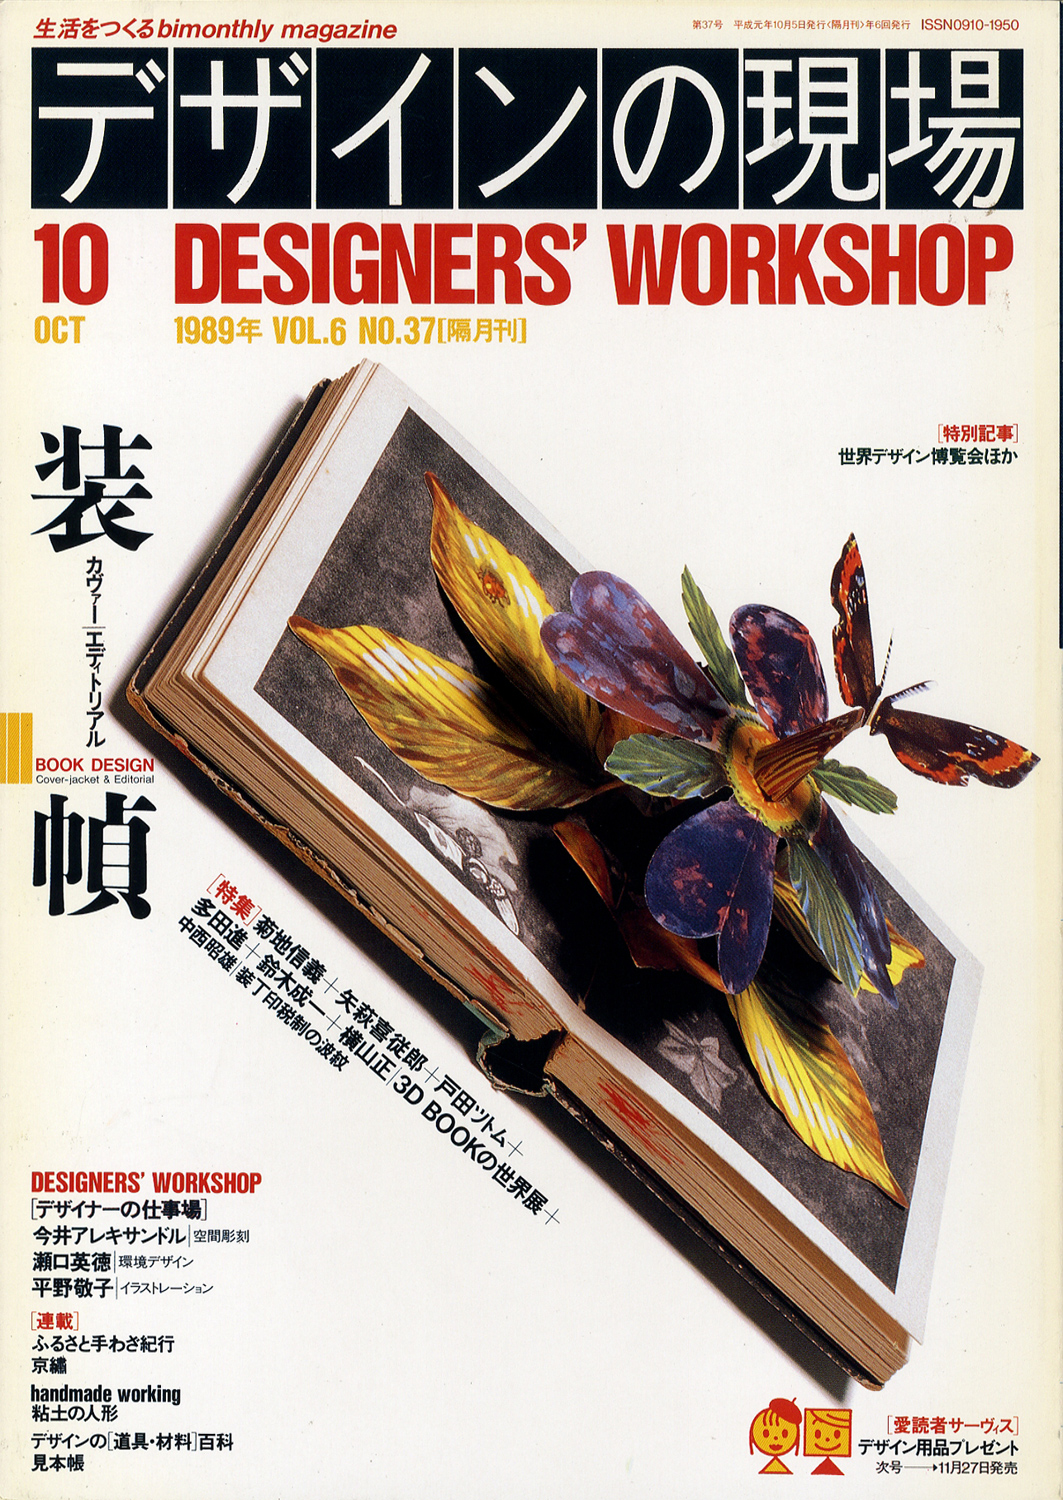 デザインの現場 DESIGNERS' WORKSHOP VOL.6 NO.37